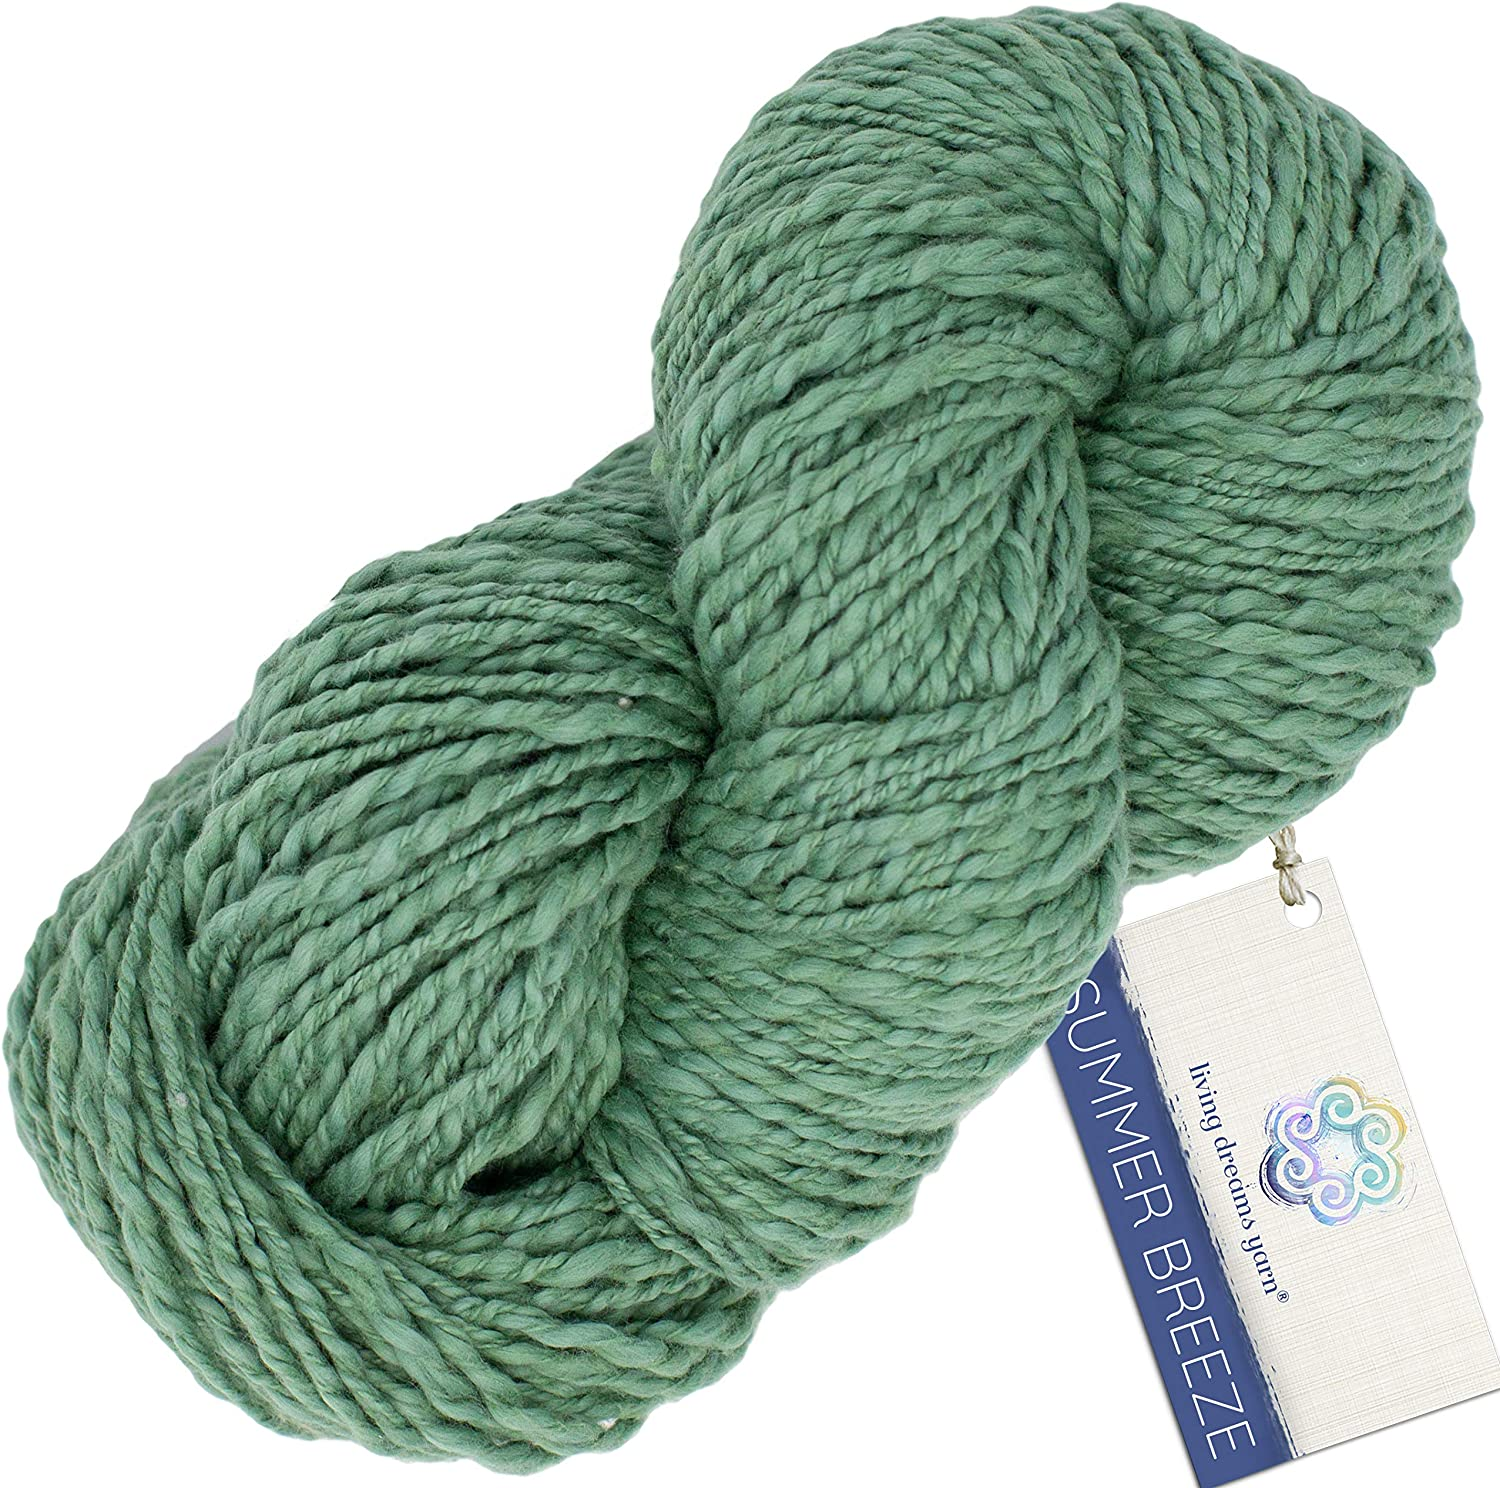 Living Dreams Yarn SUMMER BREEZE Cotton Pima 5 ☆ very popular Certified Organic Online limited product -